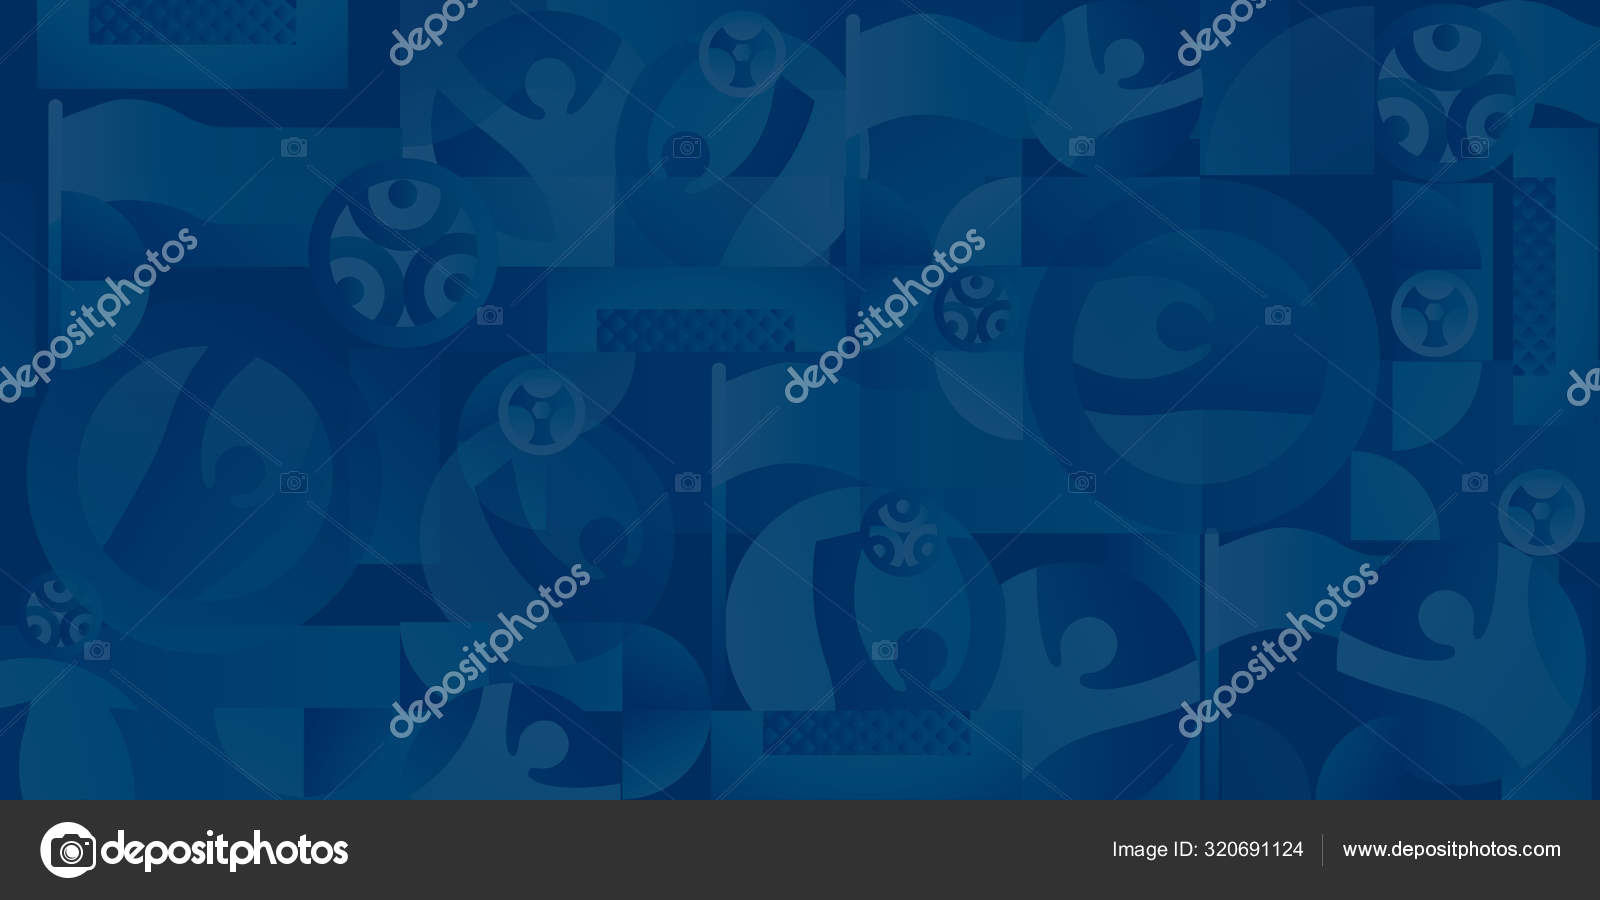 Euro 2020 Soccer European Championship Banner Abstract Blue